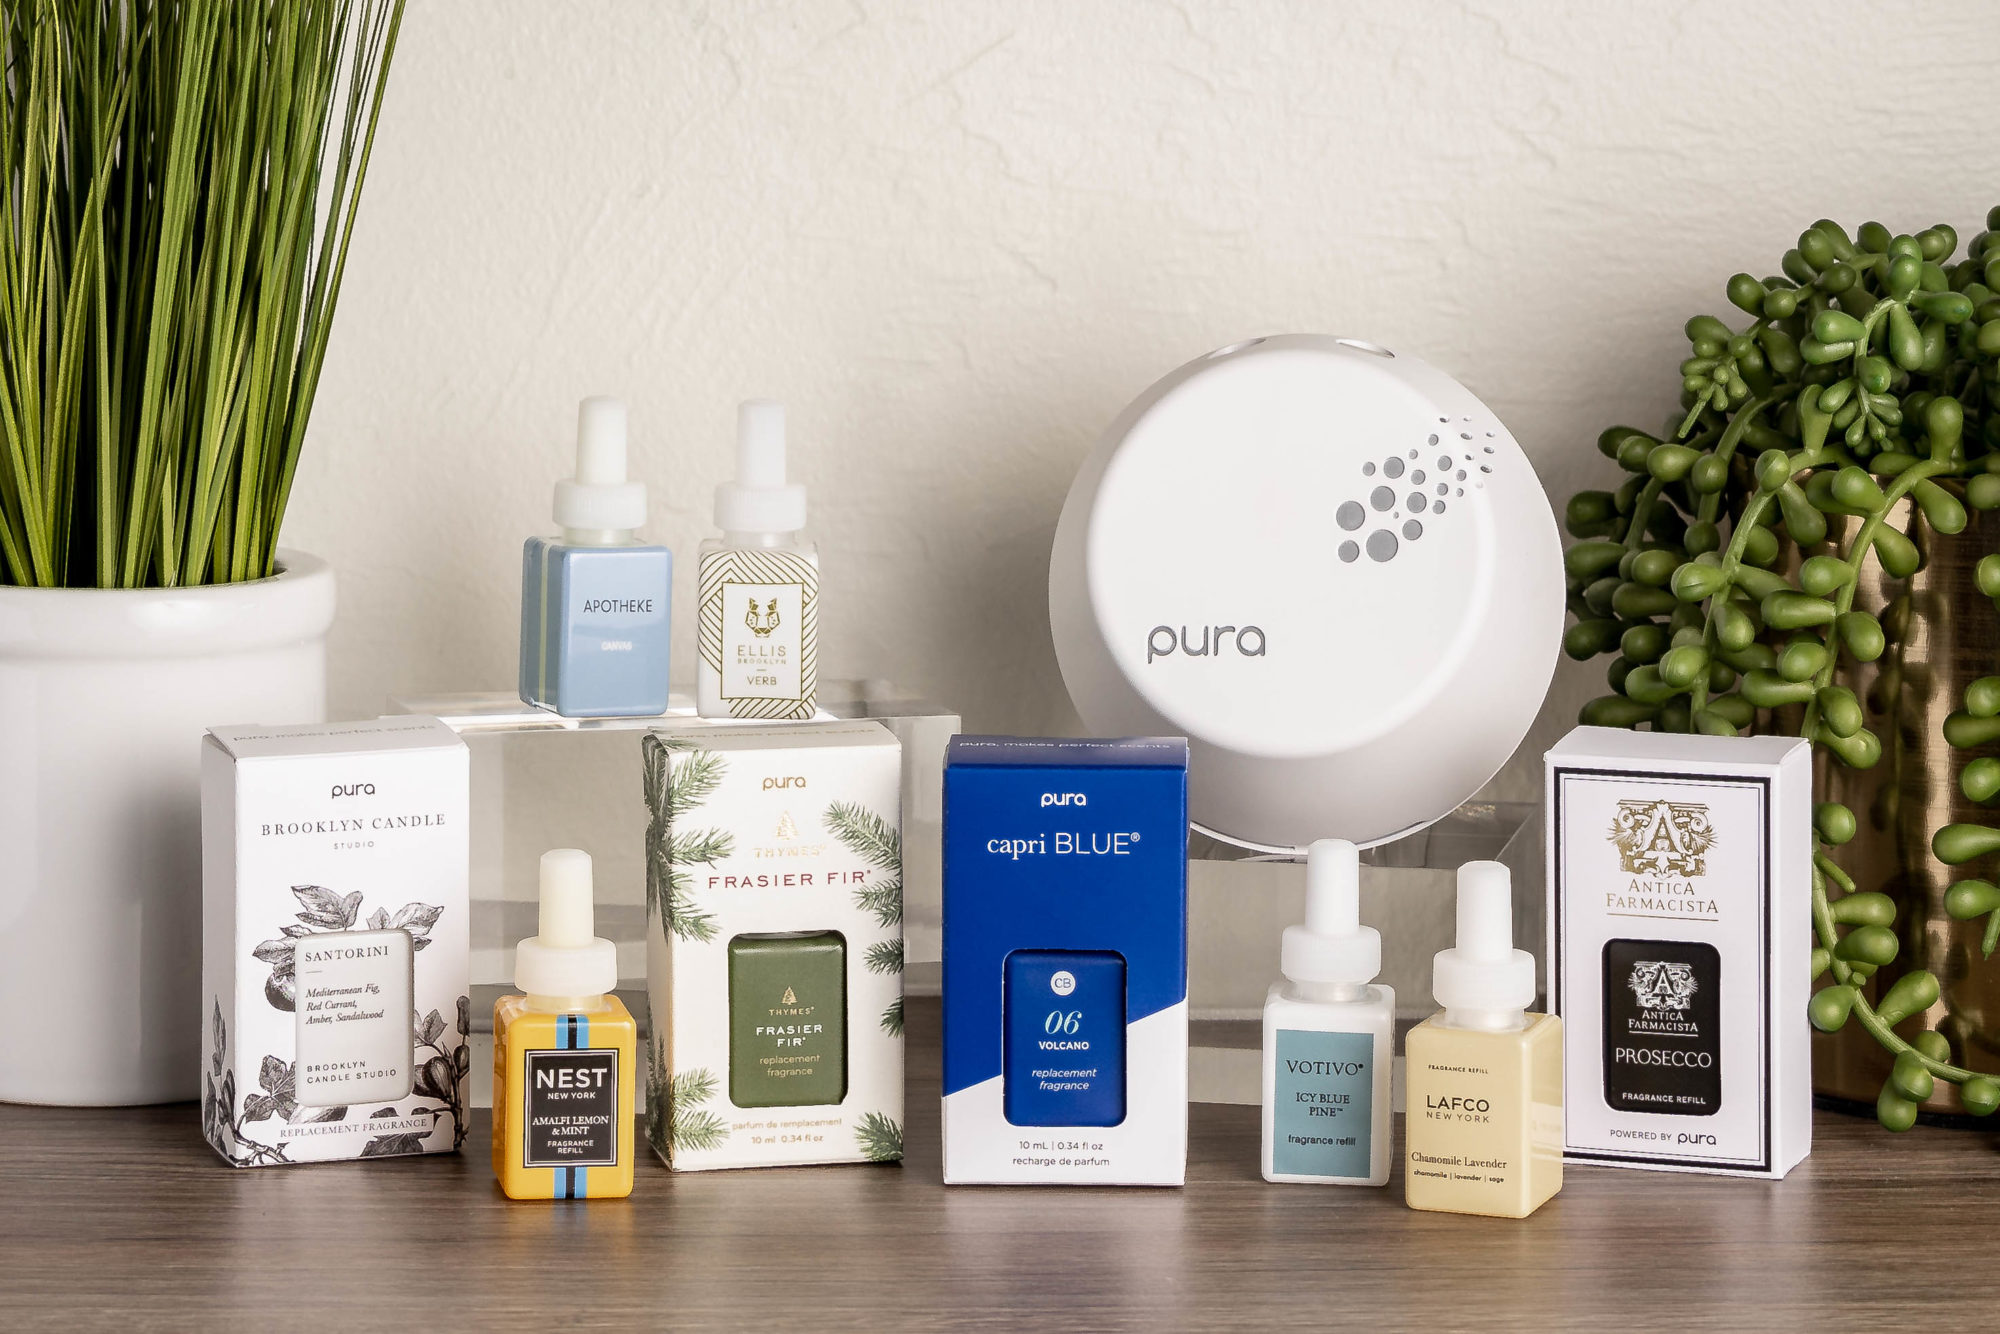 Pura founders Richie Stapler and Bruno Lima share the story of how they founded Pura, one of the world's first fragrance tech companies.